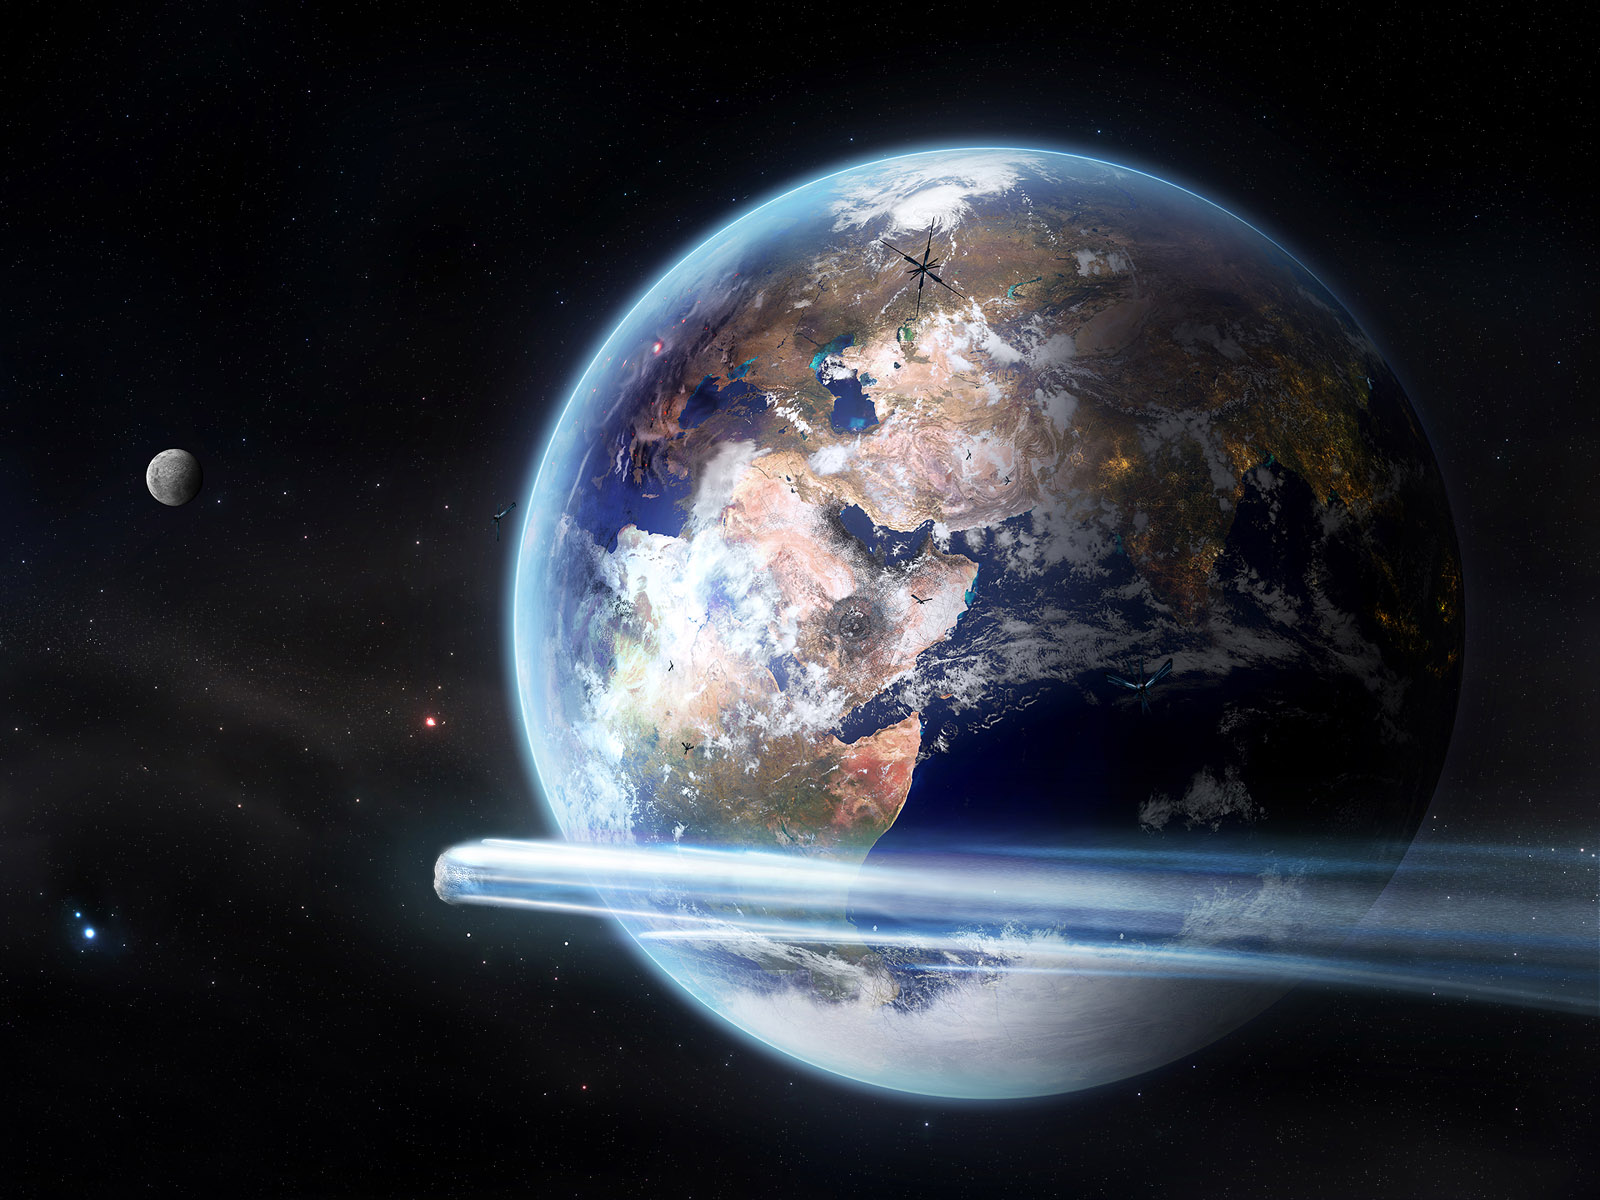 download space hd wallpaper 1080p which is under the space wallpapers 1600x1200